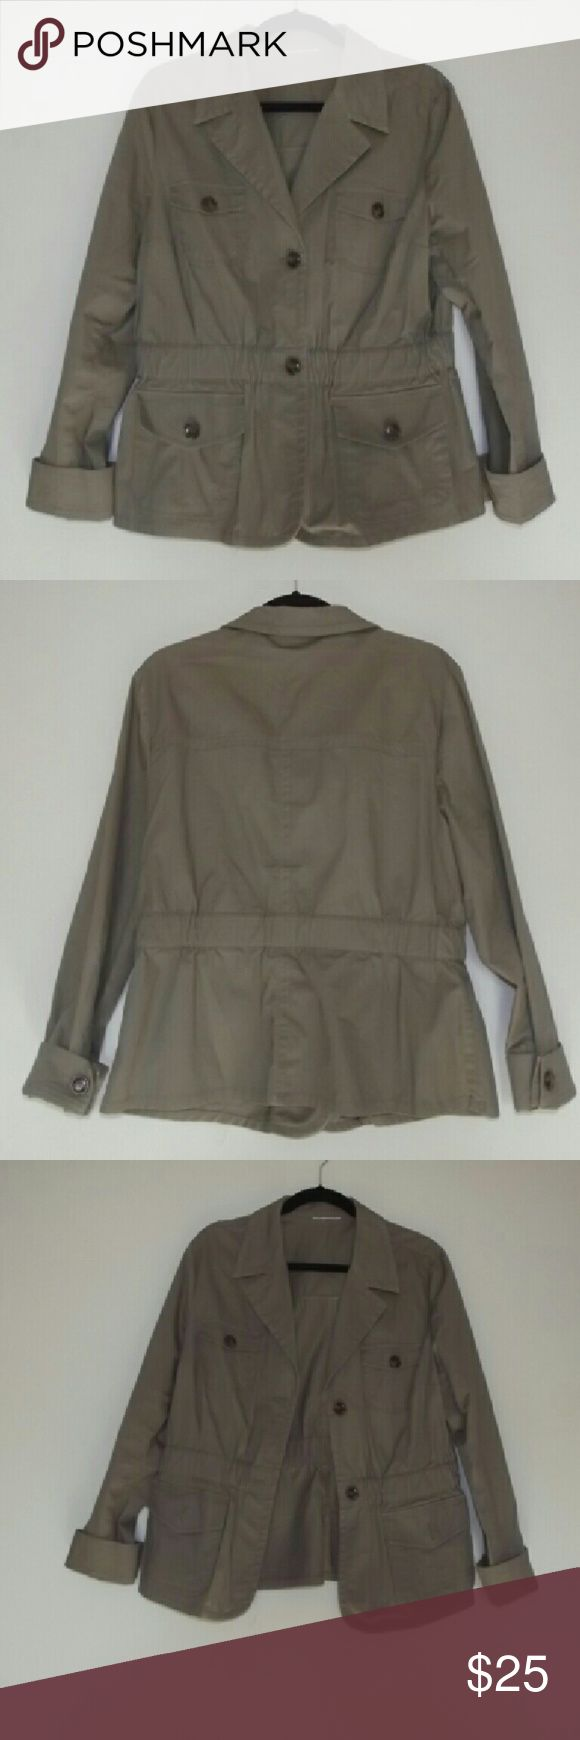 Women's utility jacket Army green utility jacket with buttons and four pockets Jackets & Coats Utility Jackets